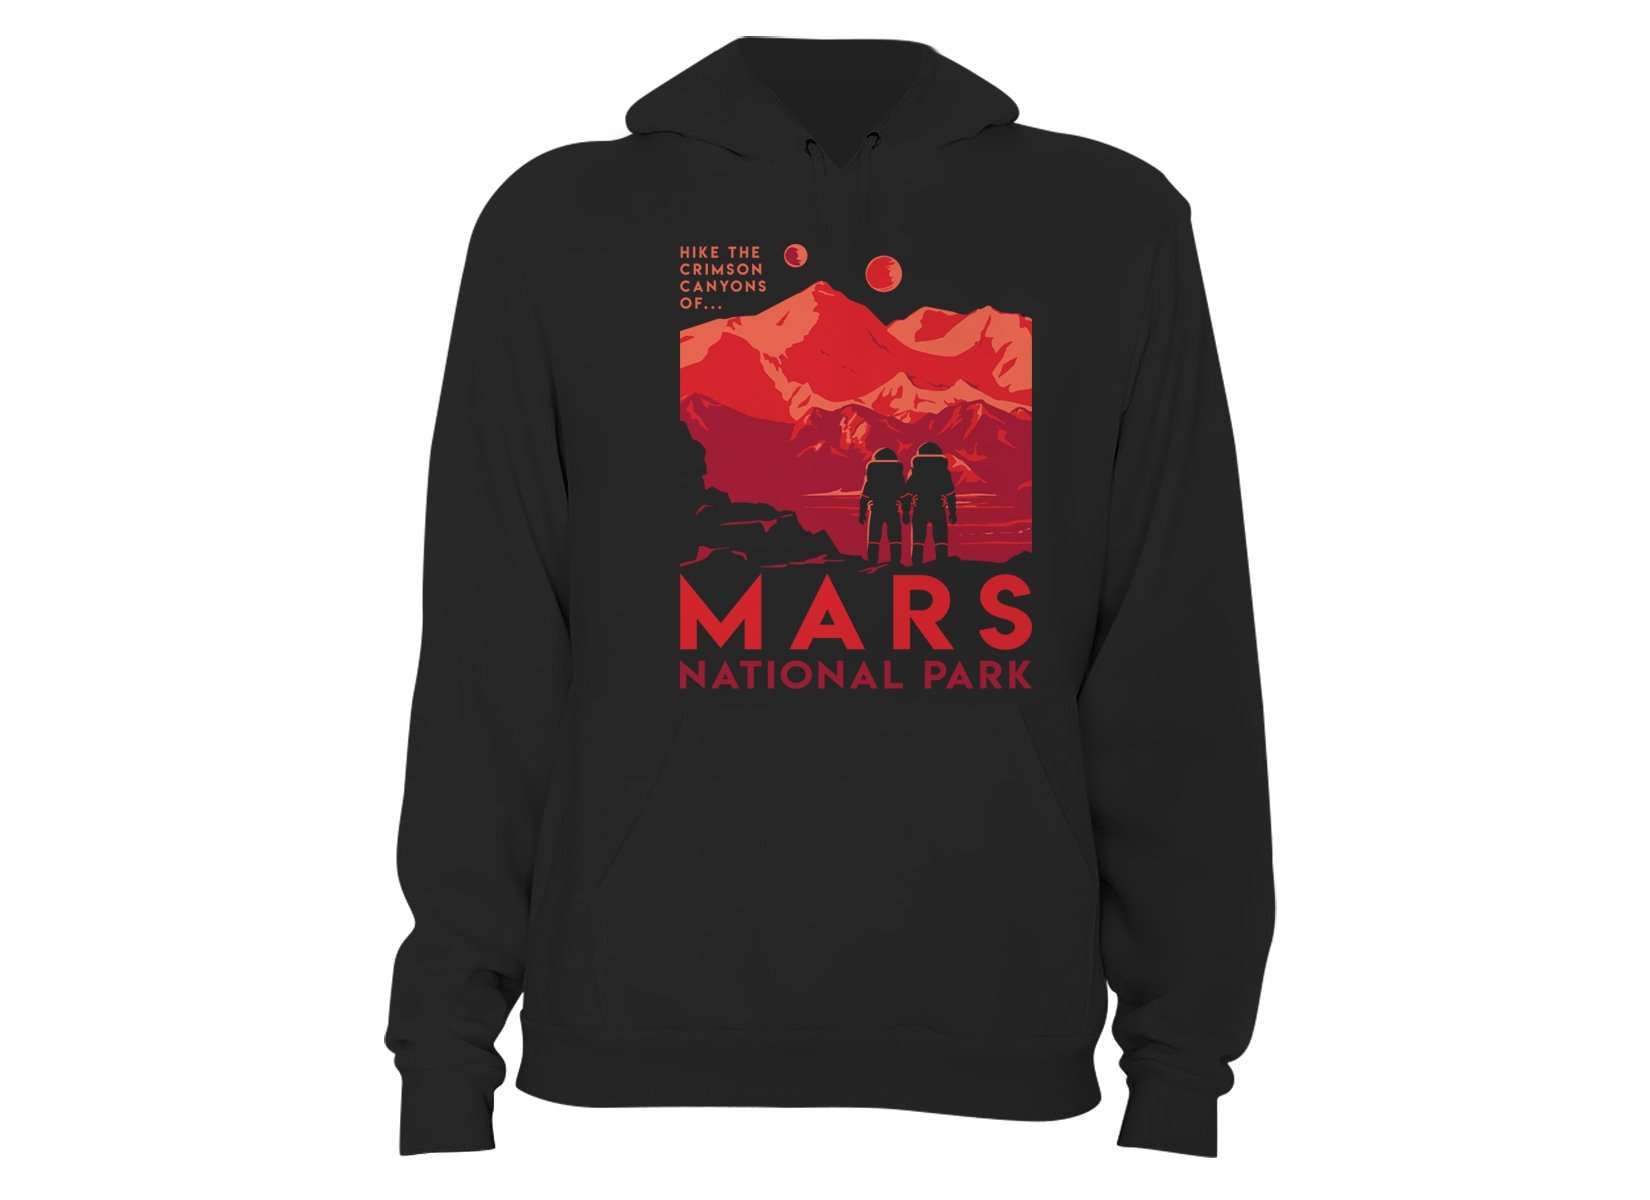 Mars National Park on Hoodie